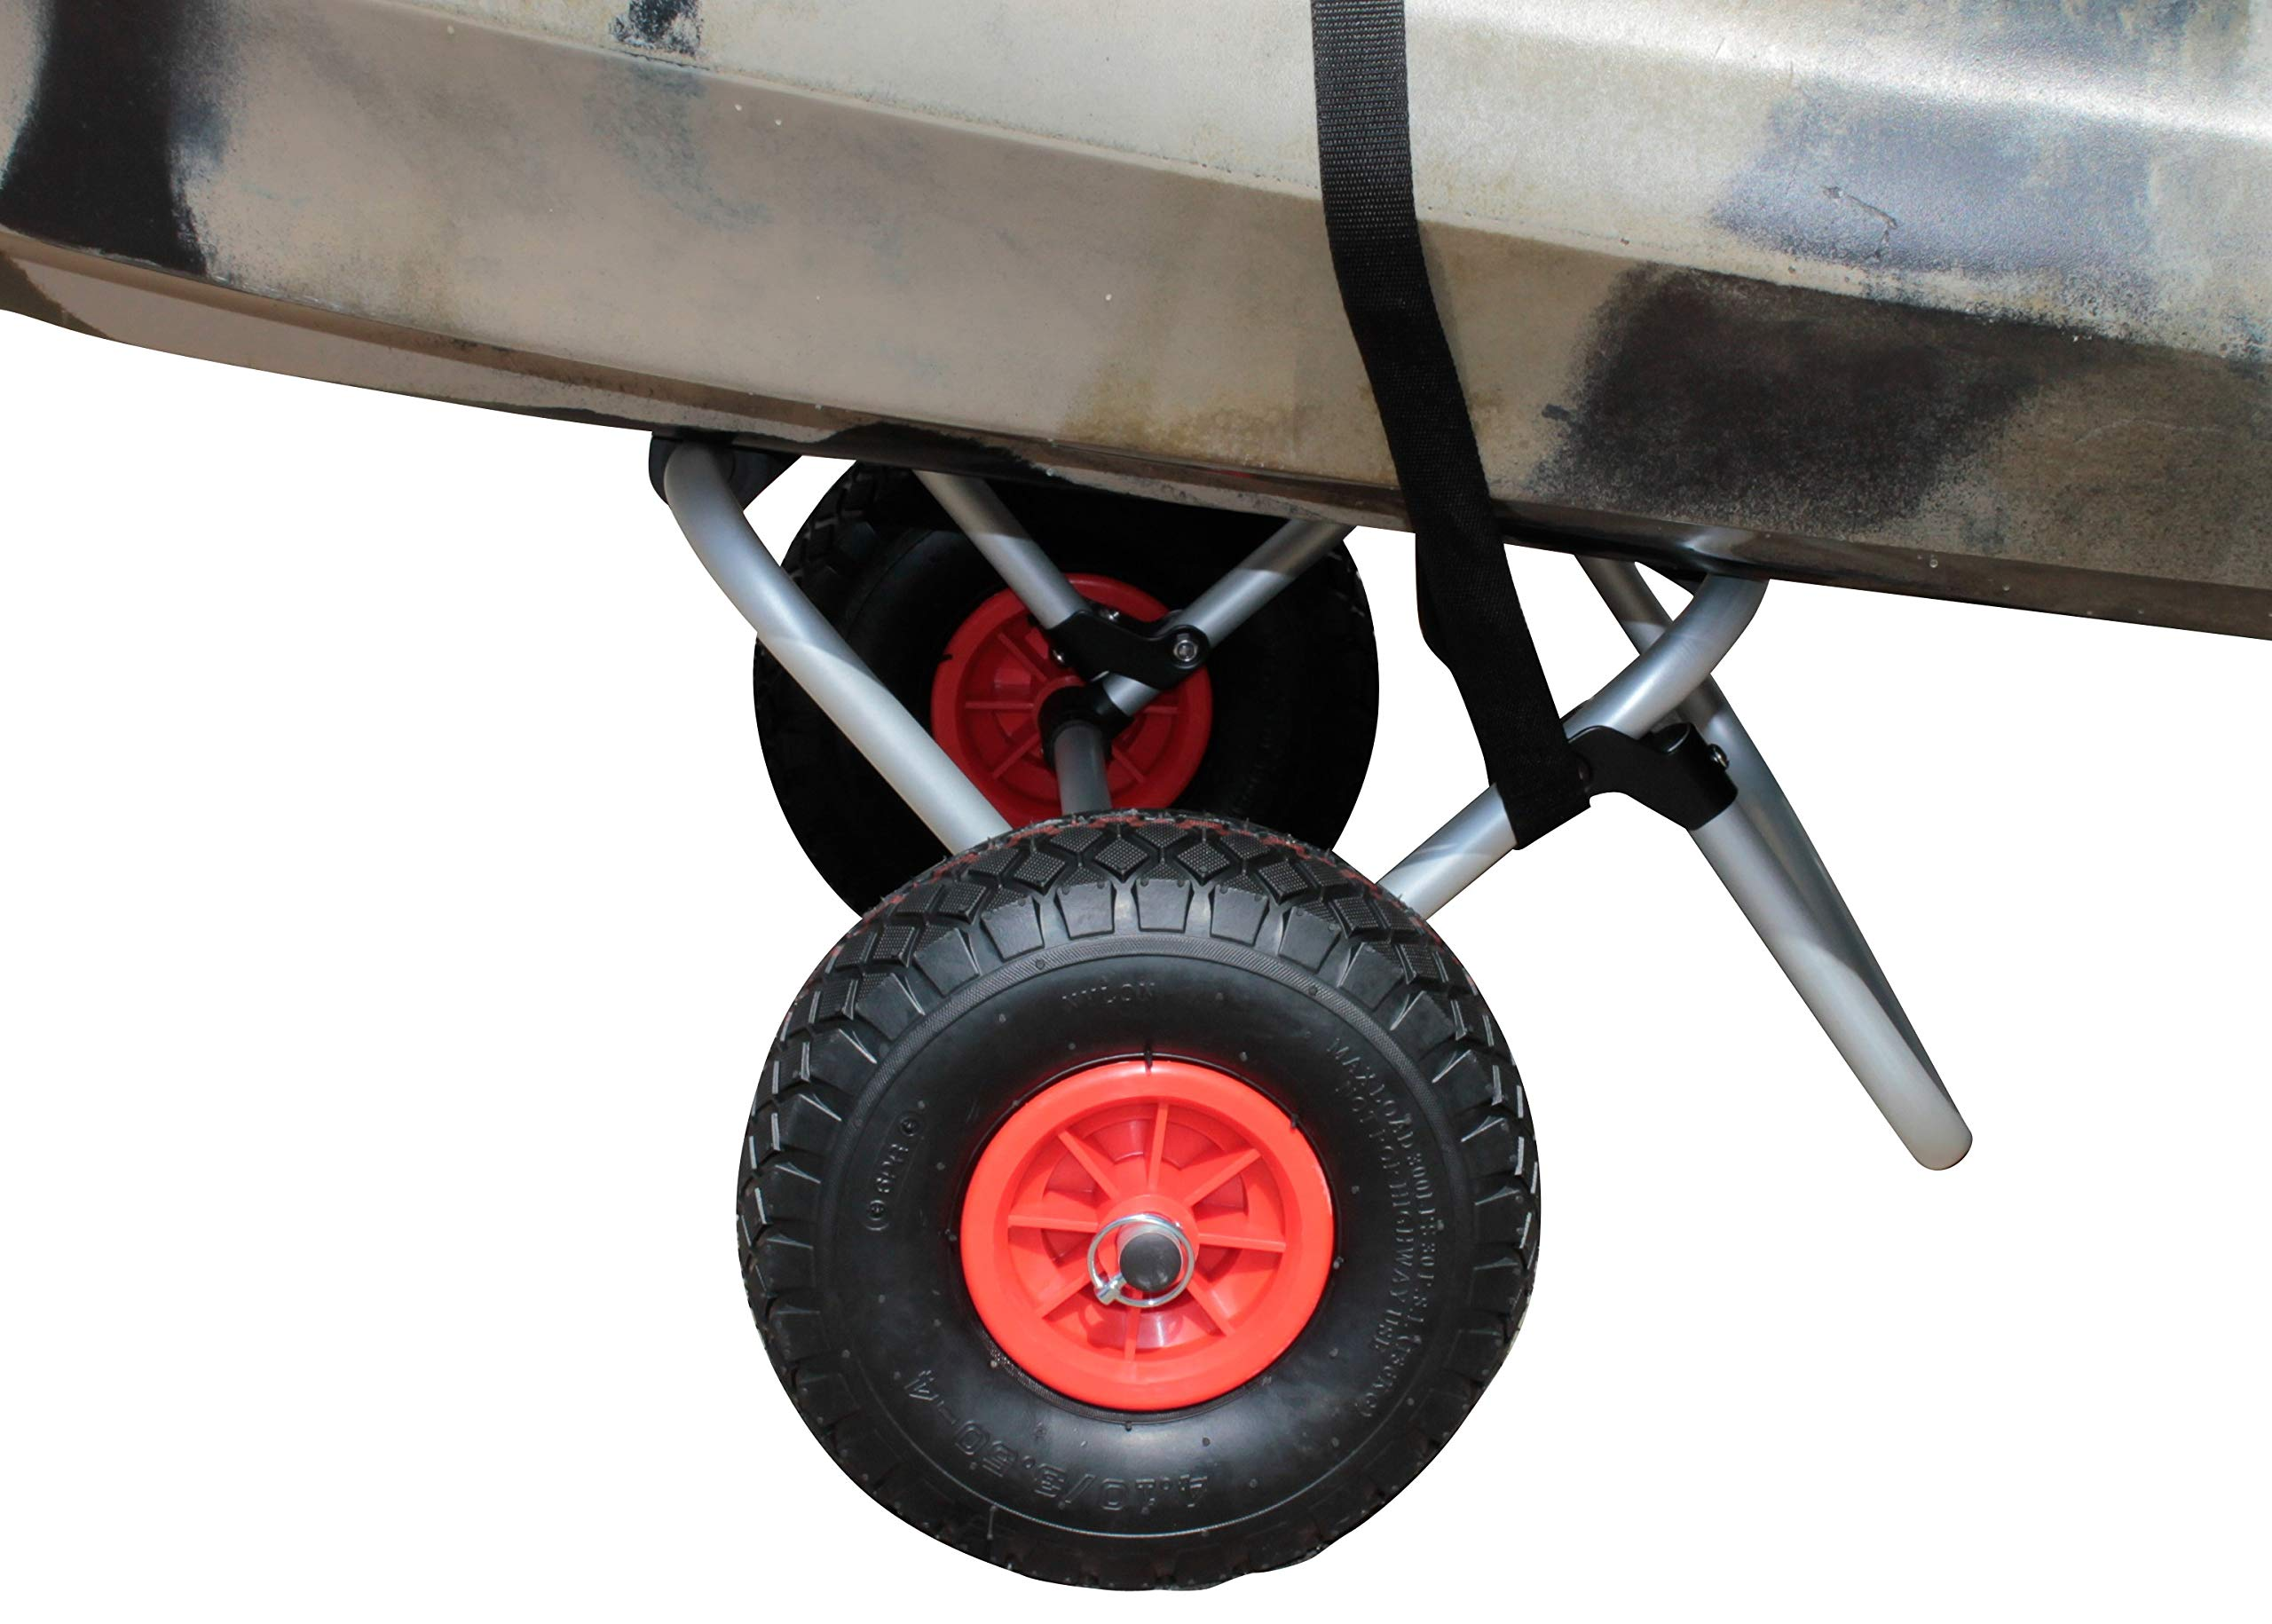 Brooklyn Kayak Company BKC UH-KC271 Kayak Cart - Two-Wheeled Cart for Kayaks, SUPs, Canoes - Easy Overland Transport of Personal Watercraft by Brooklyn Kayak Company